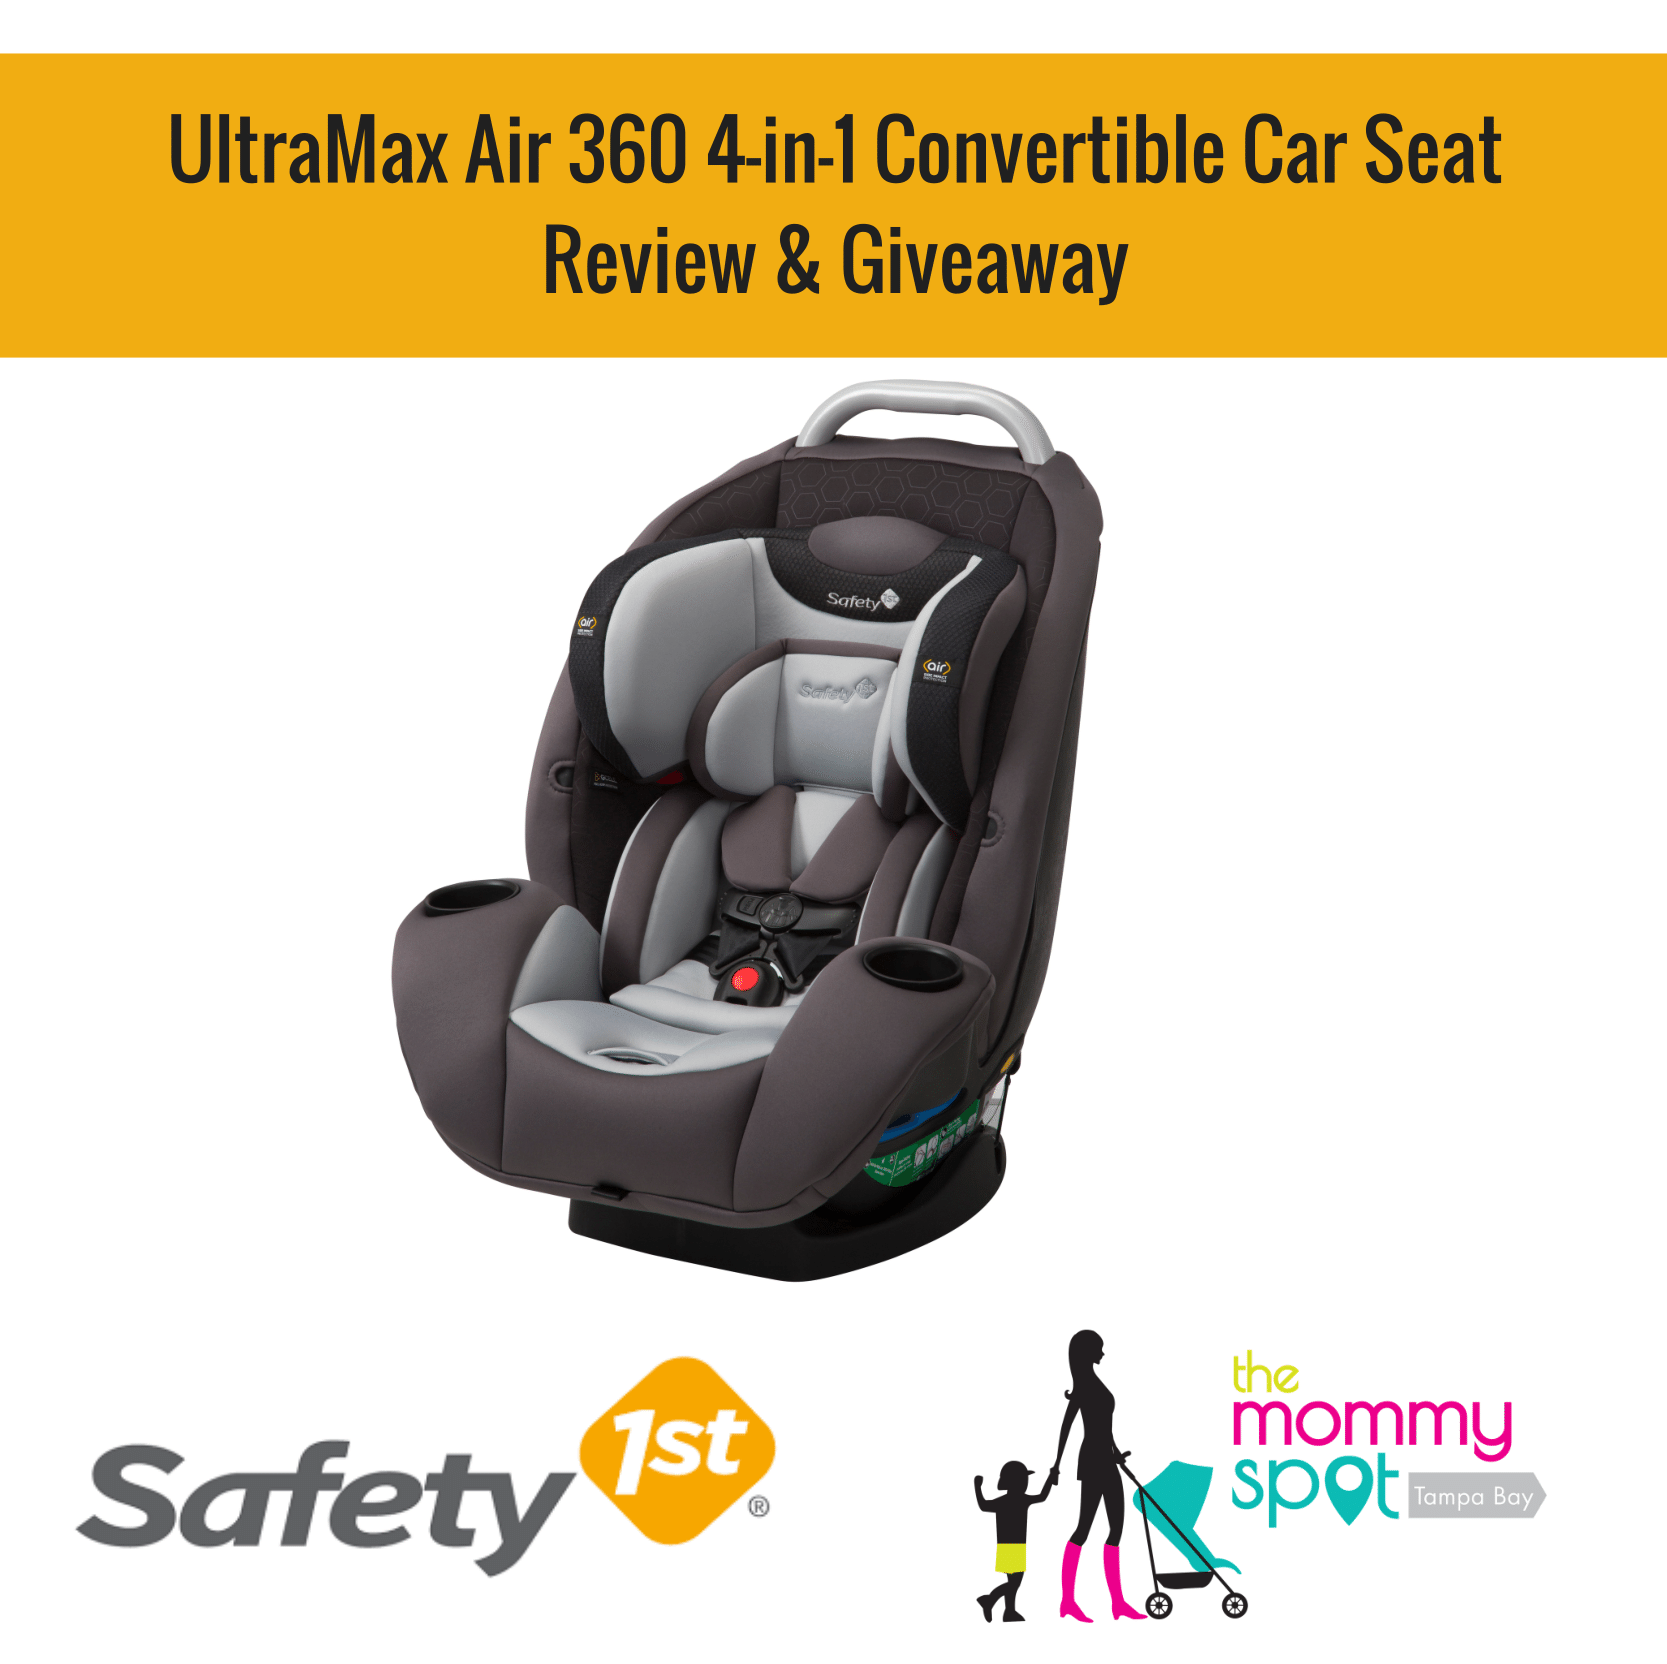 safety 1st ultramax air 360 4 in 1 convertible car seat review giveaway the mommy spot tampa bay. Black Bedroom Furniture Sets. Home Design Ideas